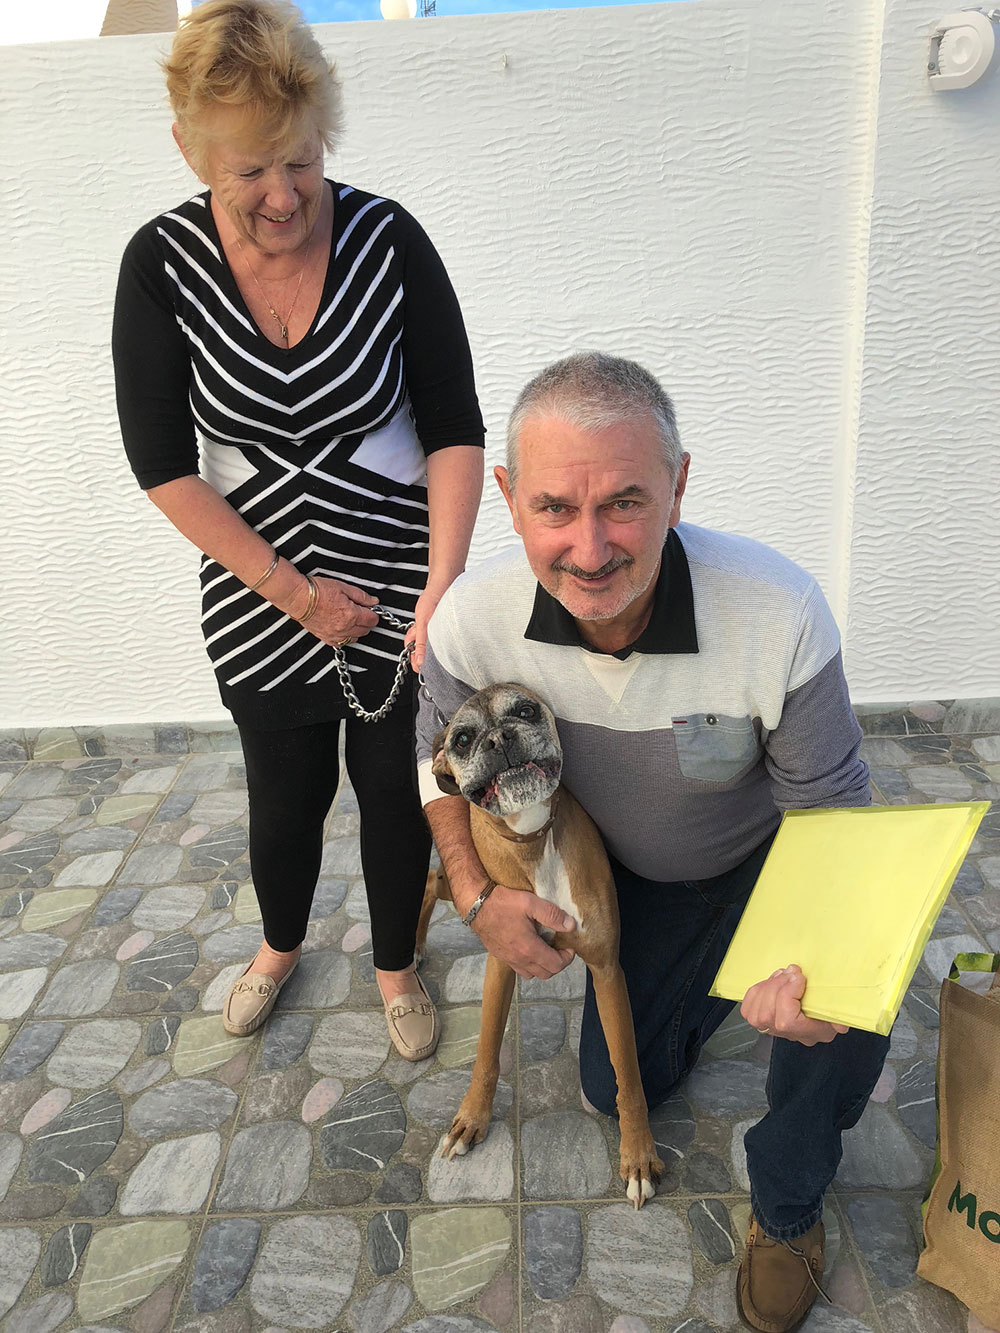 A warm welcome from David and Tash in Orihuela, who were on hand to take care of Arca until Steve and Ann arrived.